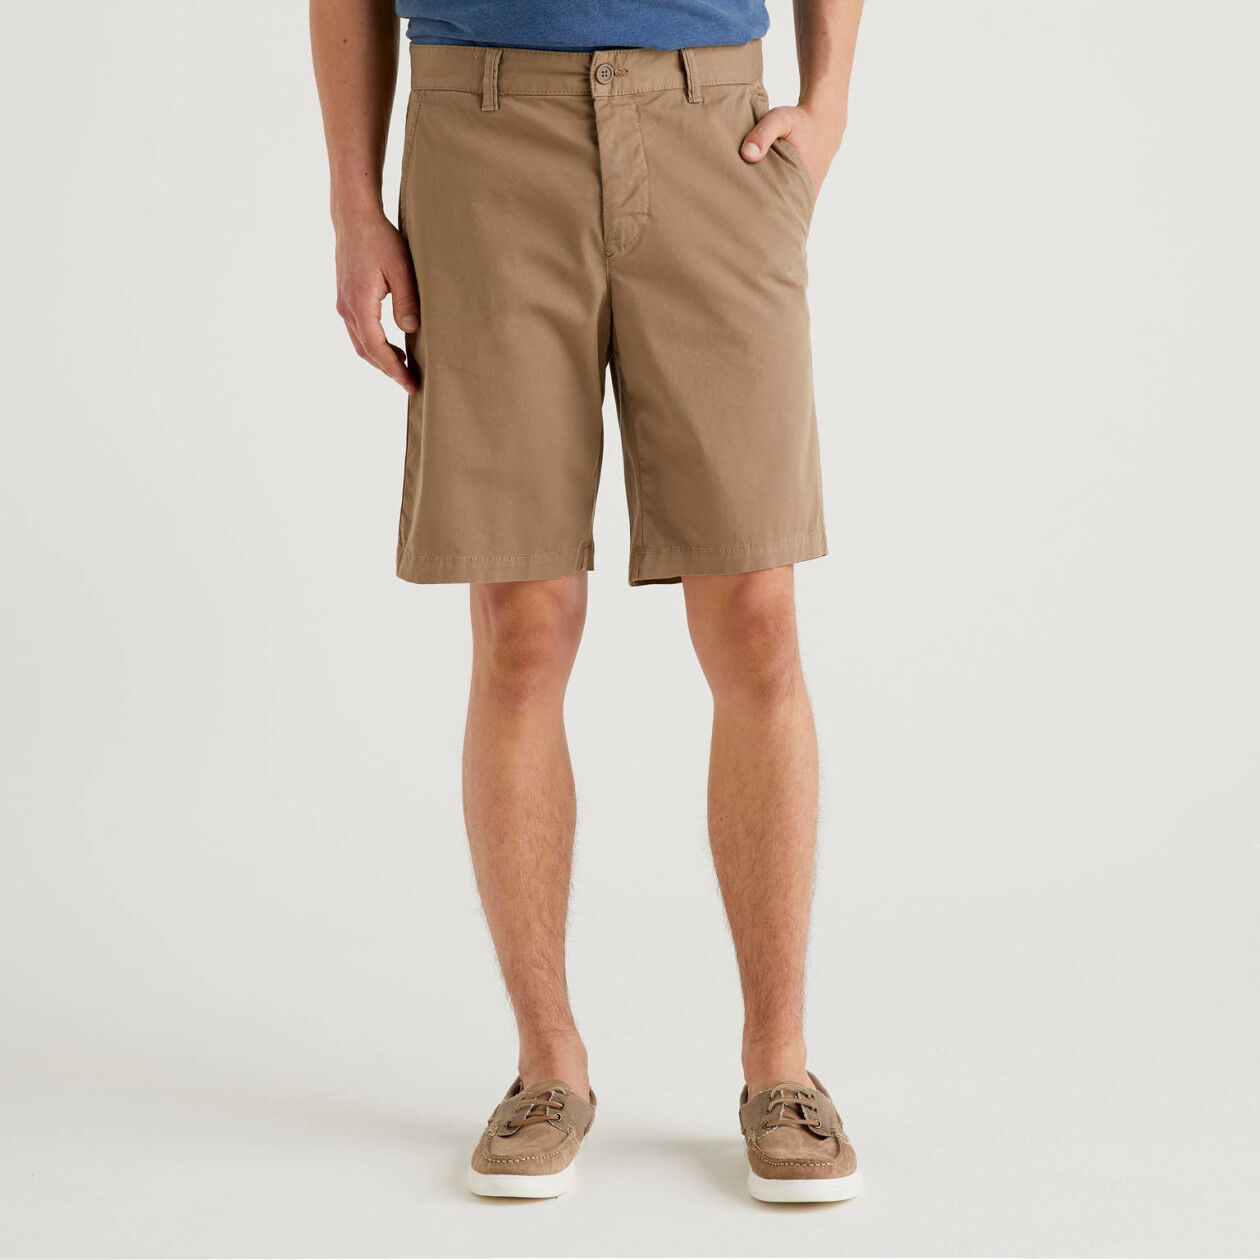 Stretch chino bermudas